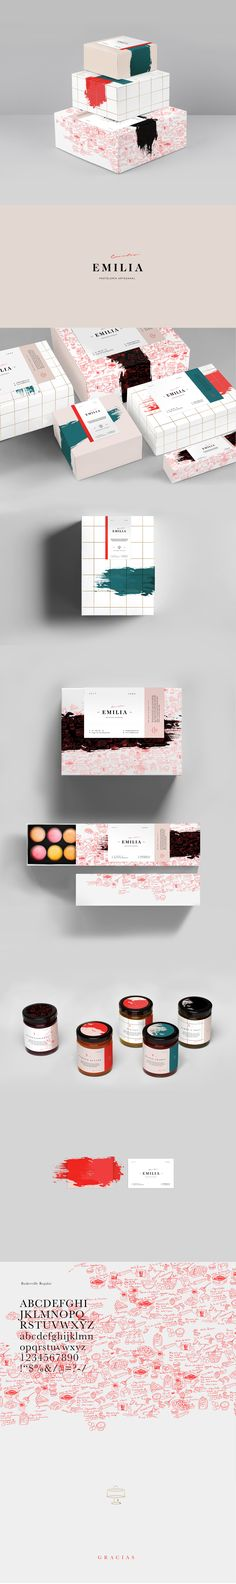 Emilia Pasteleria Artesanal Packaging by Karla Heredia Martinez Logo Design, Web Design, Graphic Design Branding, Label Design, Identity Design, Brand Identity, Package Design, Brand Design, Brochure Design